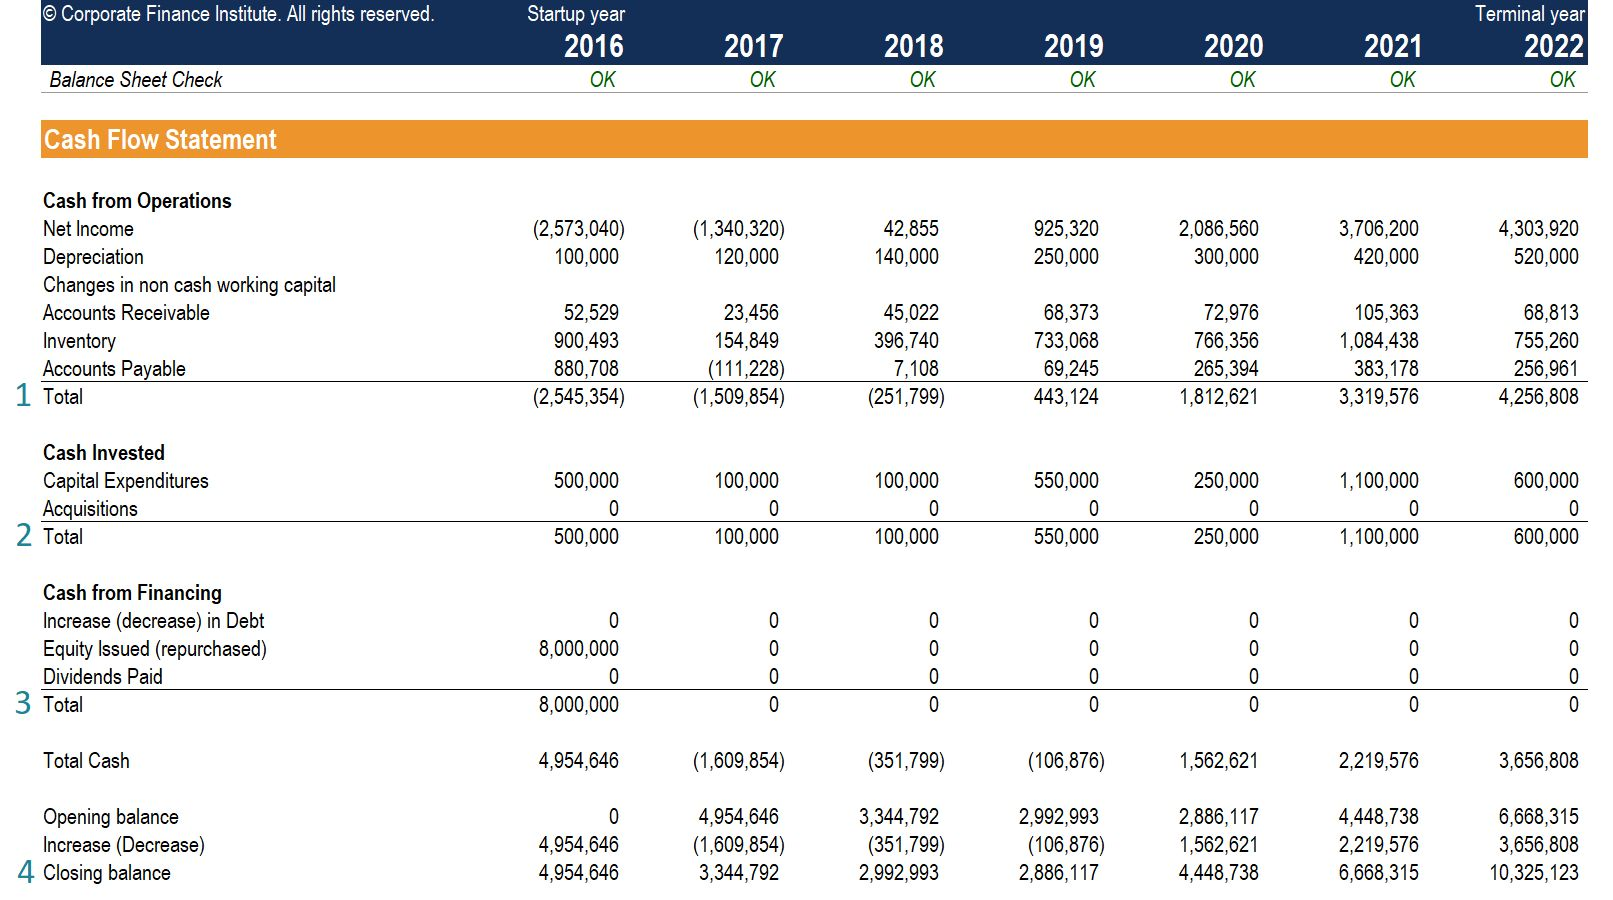 The Stunning Cash Flow Statement How A Statement Of Cash Flows Works Inside Cash Position Report Template Pi Cash Flow Statement Cash Flow Statement Template Simple statement of cash flow